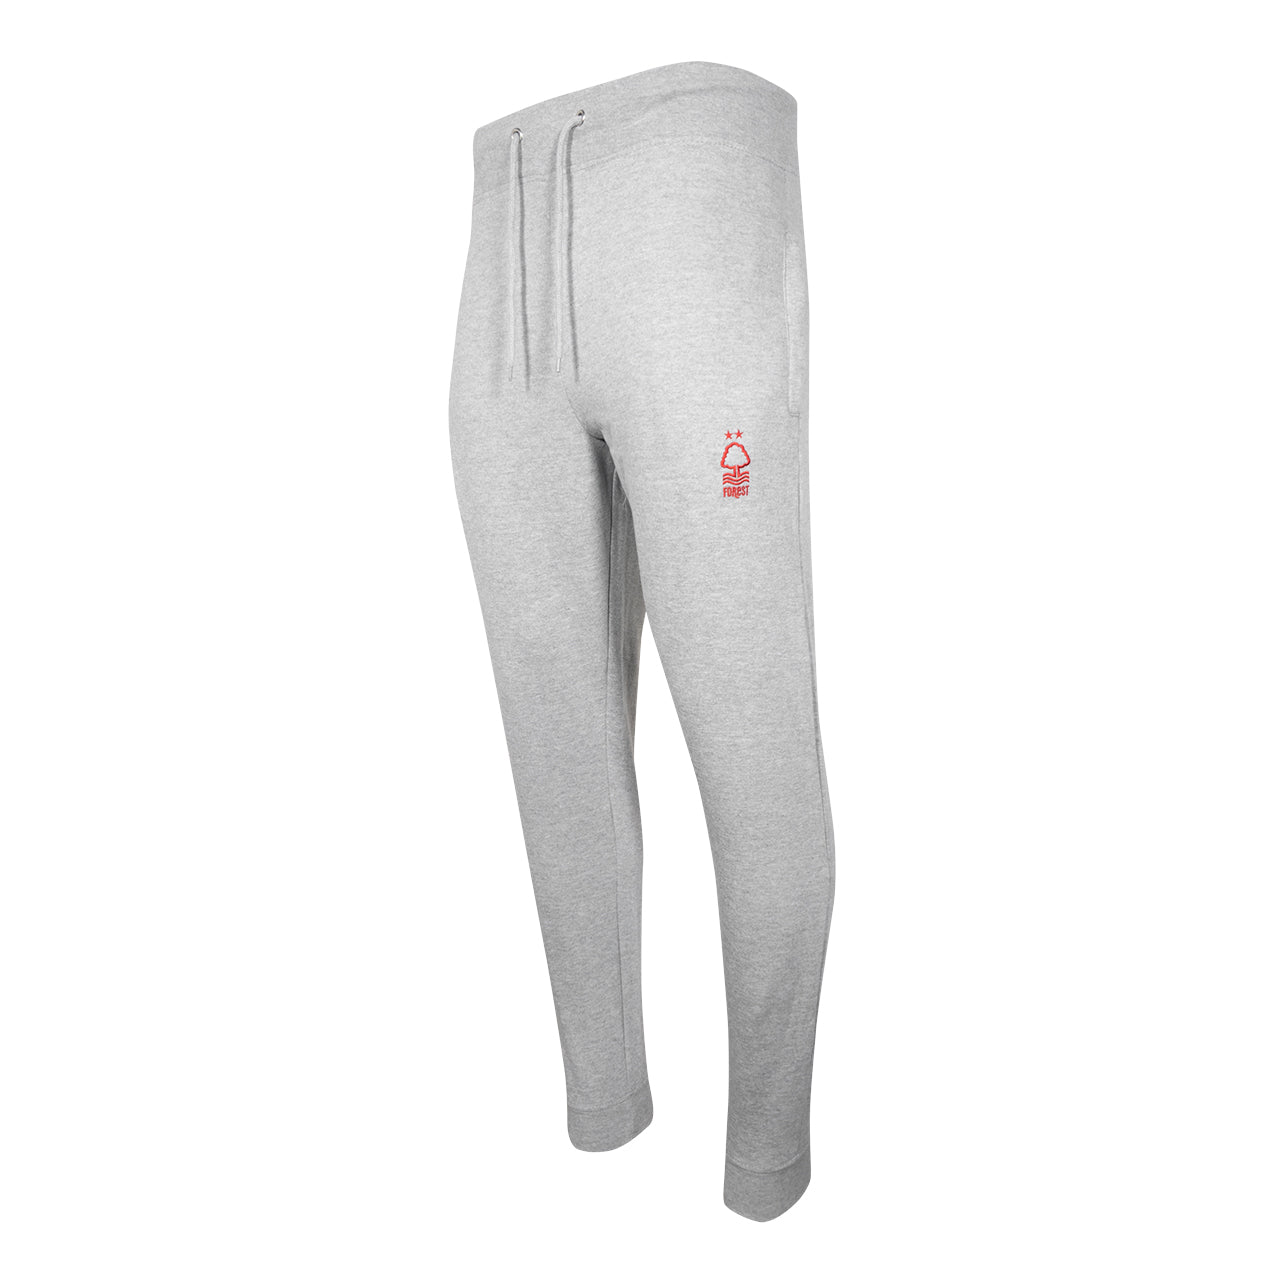 NFFC Men's Grey Marl Lucan Sweat Pant